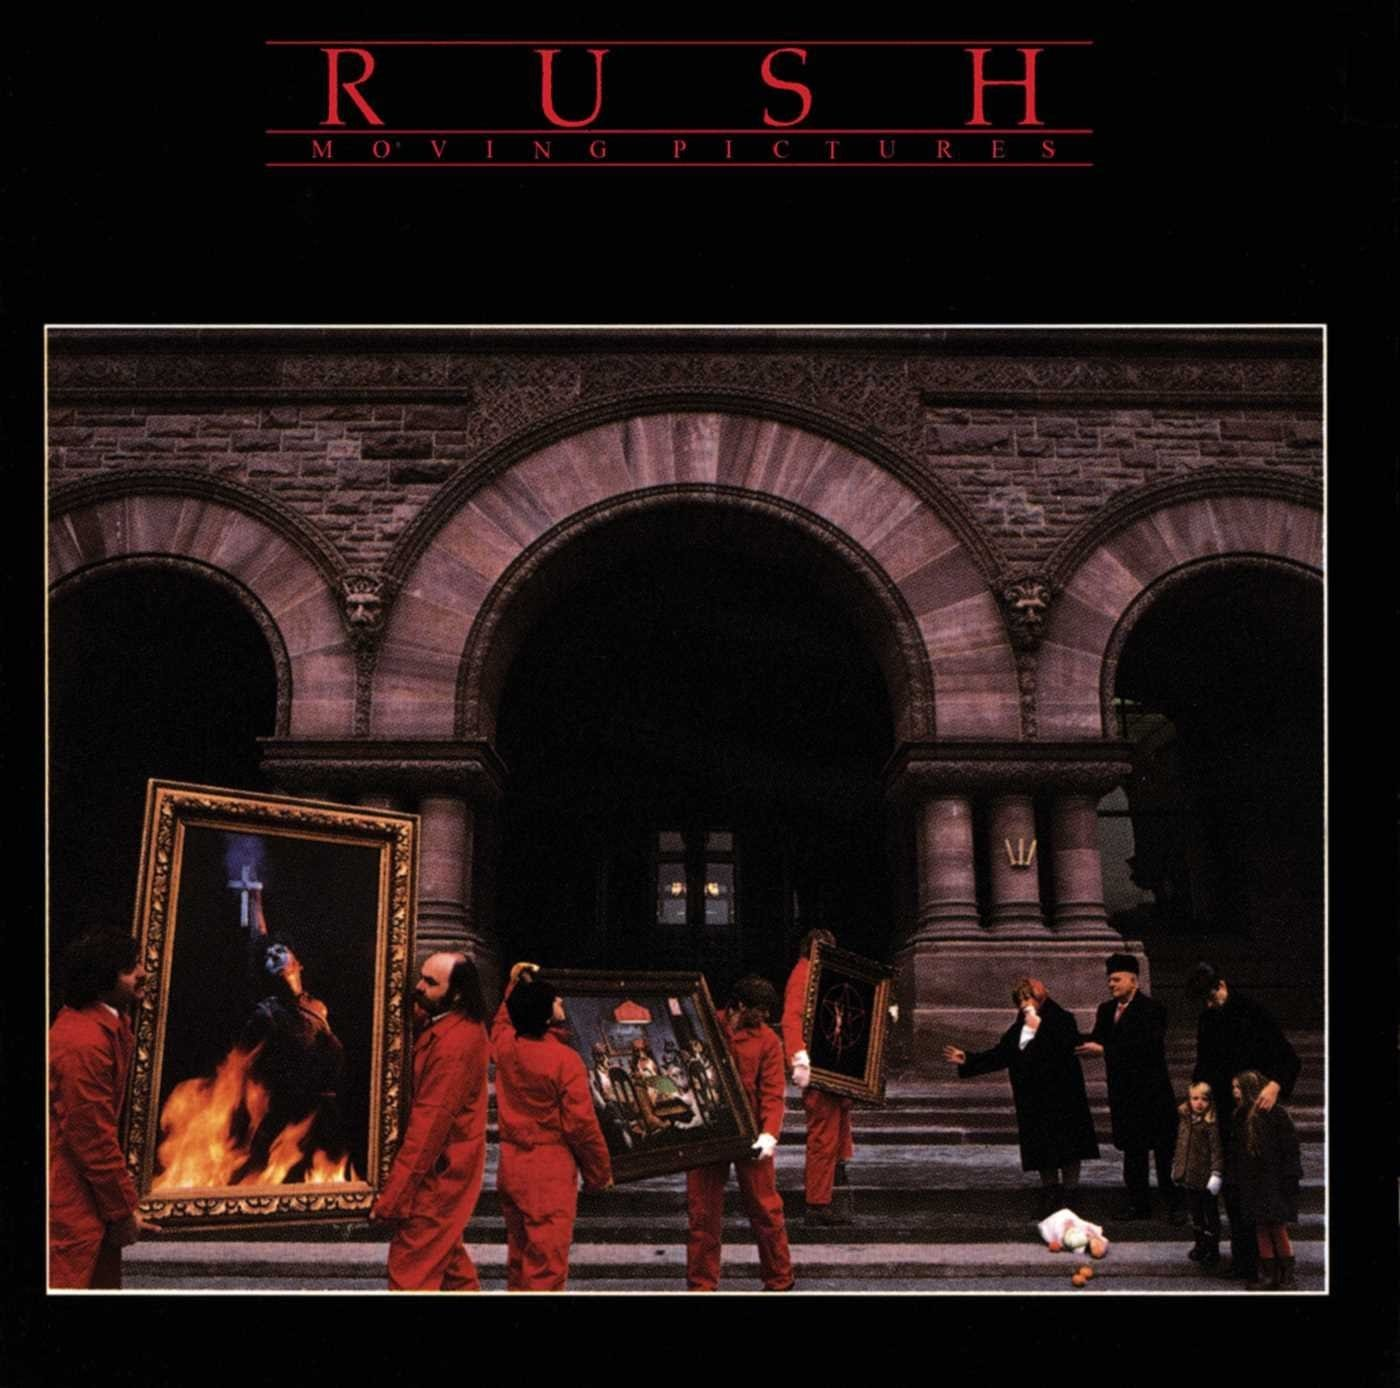 National Album Day: Moving Pictures by Rush